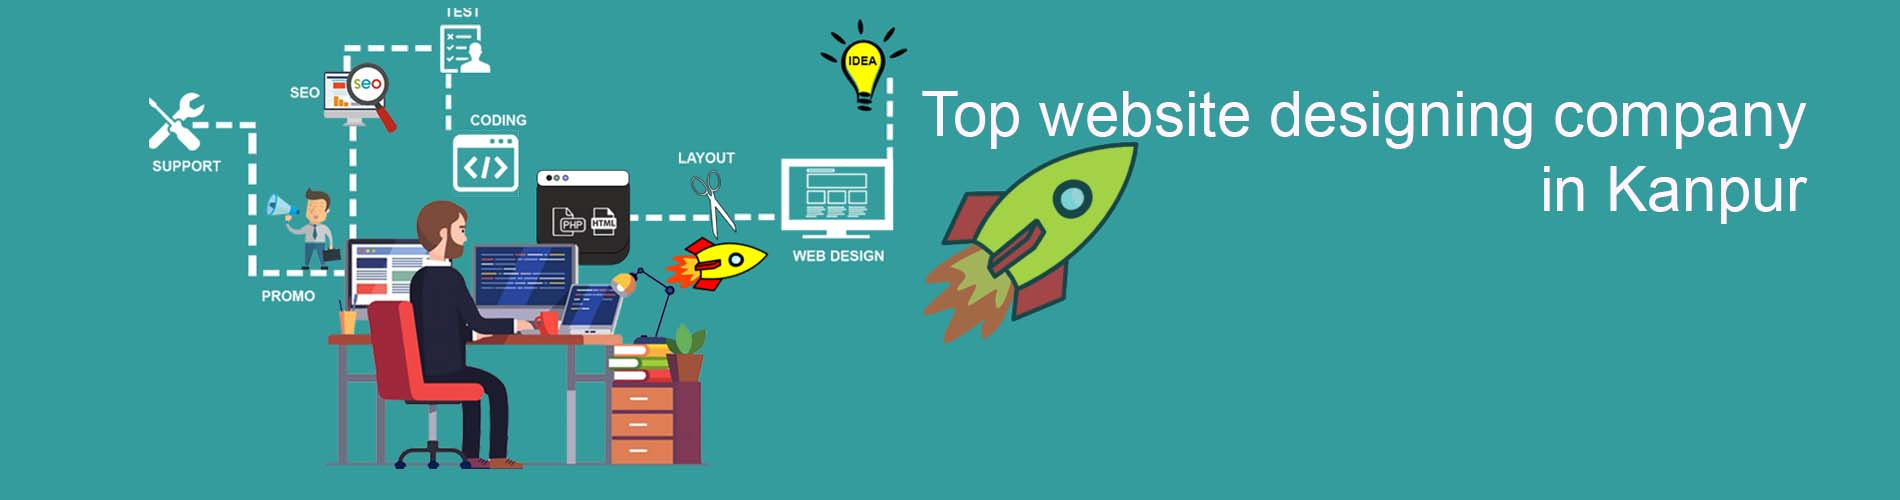 web designing company in kanpur